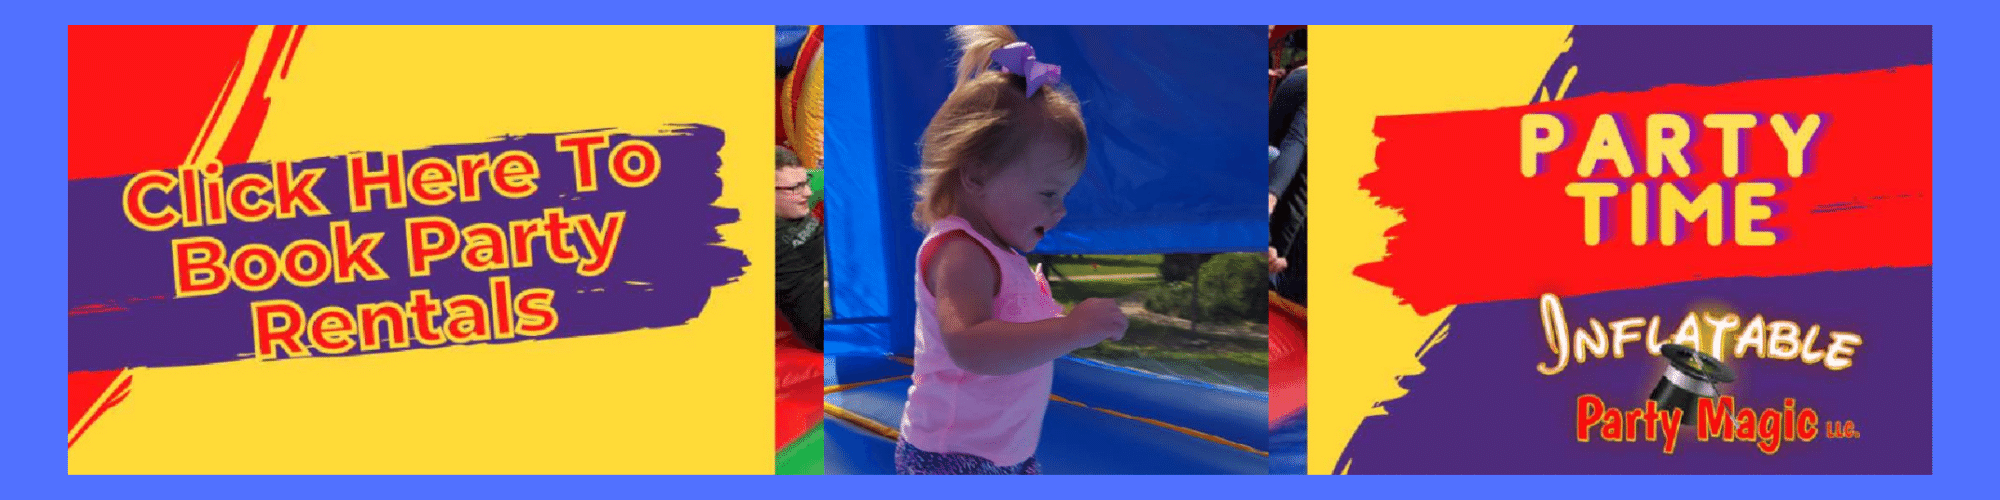 Forest Hill TX Bounce House Rentals, Water Slide Rentals, and Party Rentals Book Now